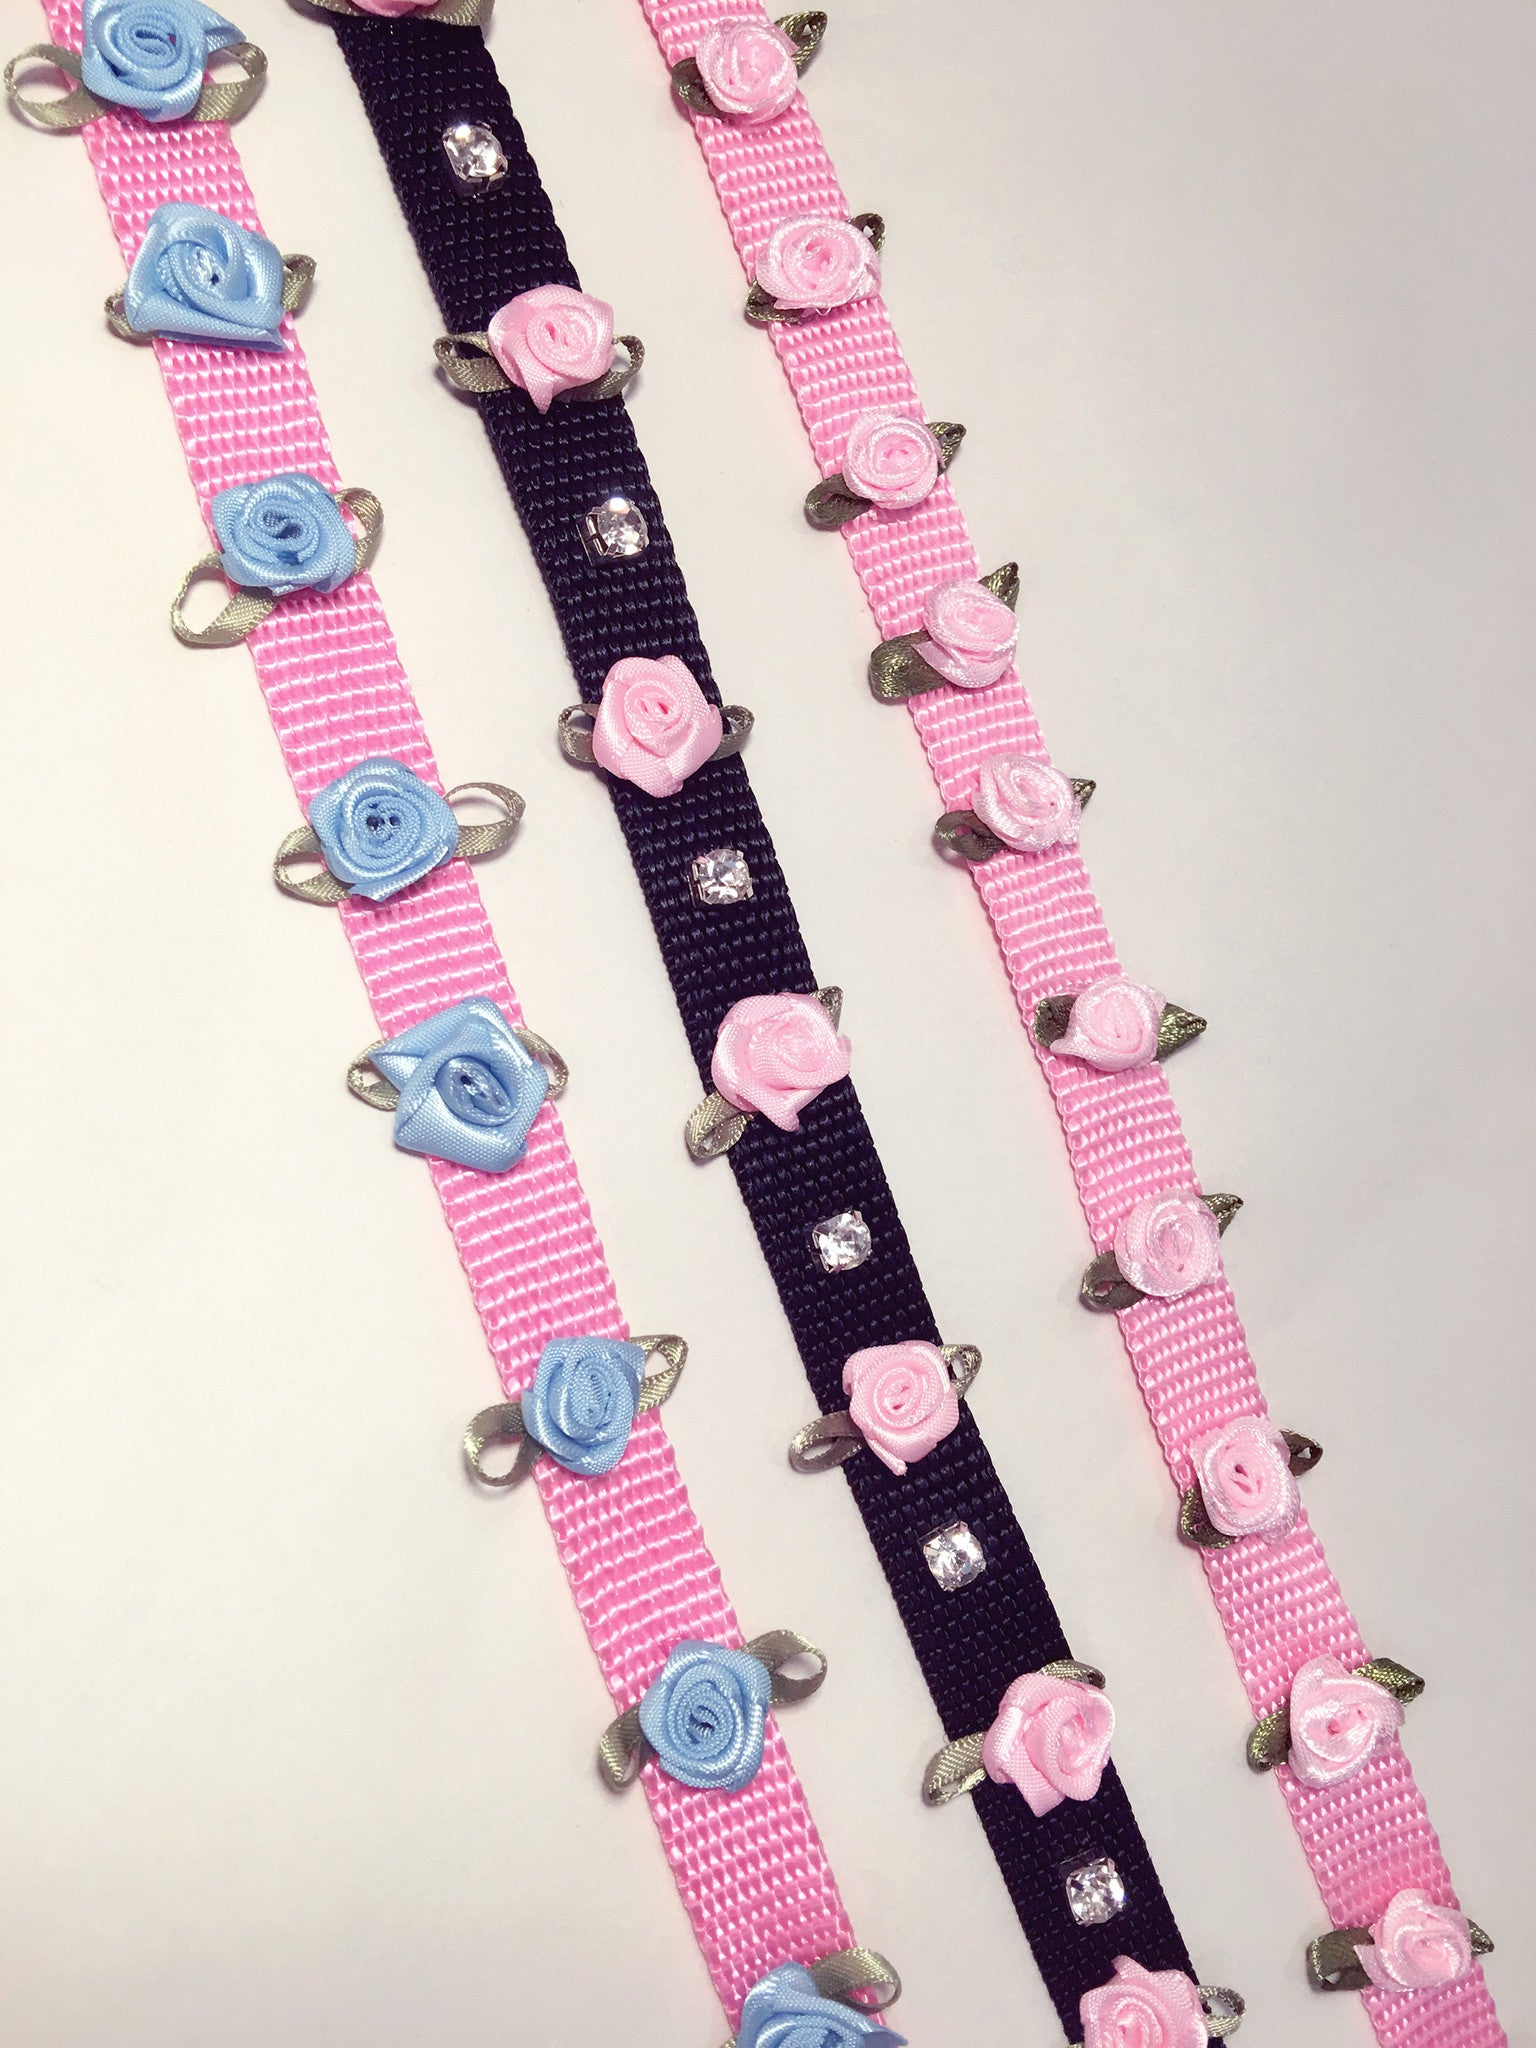 Pink BDSM fetish leash crystal babygirl fashion pastel goth play leash available at BABY VOODOO - Shop now kawaii kink at BABYVOODOO.COM ♥